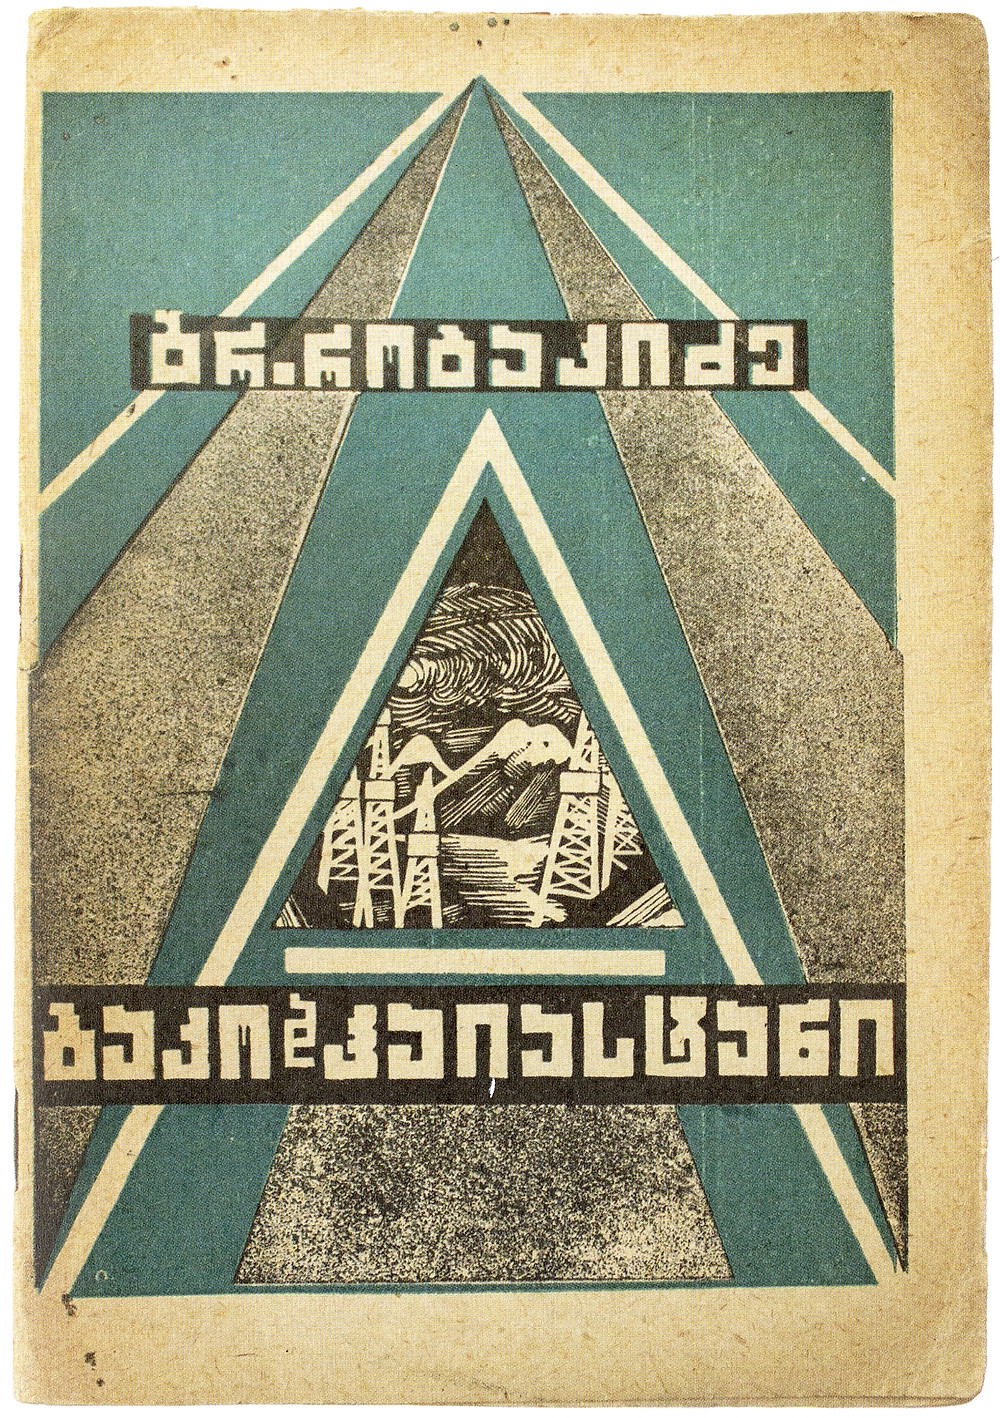 Cover design by Irakli Gamrekeli, 1930.